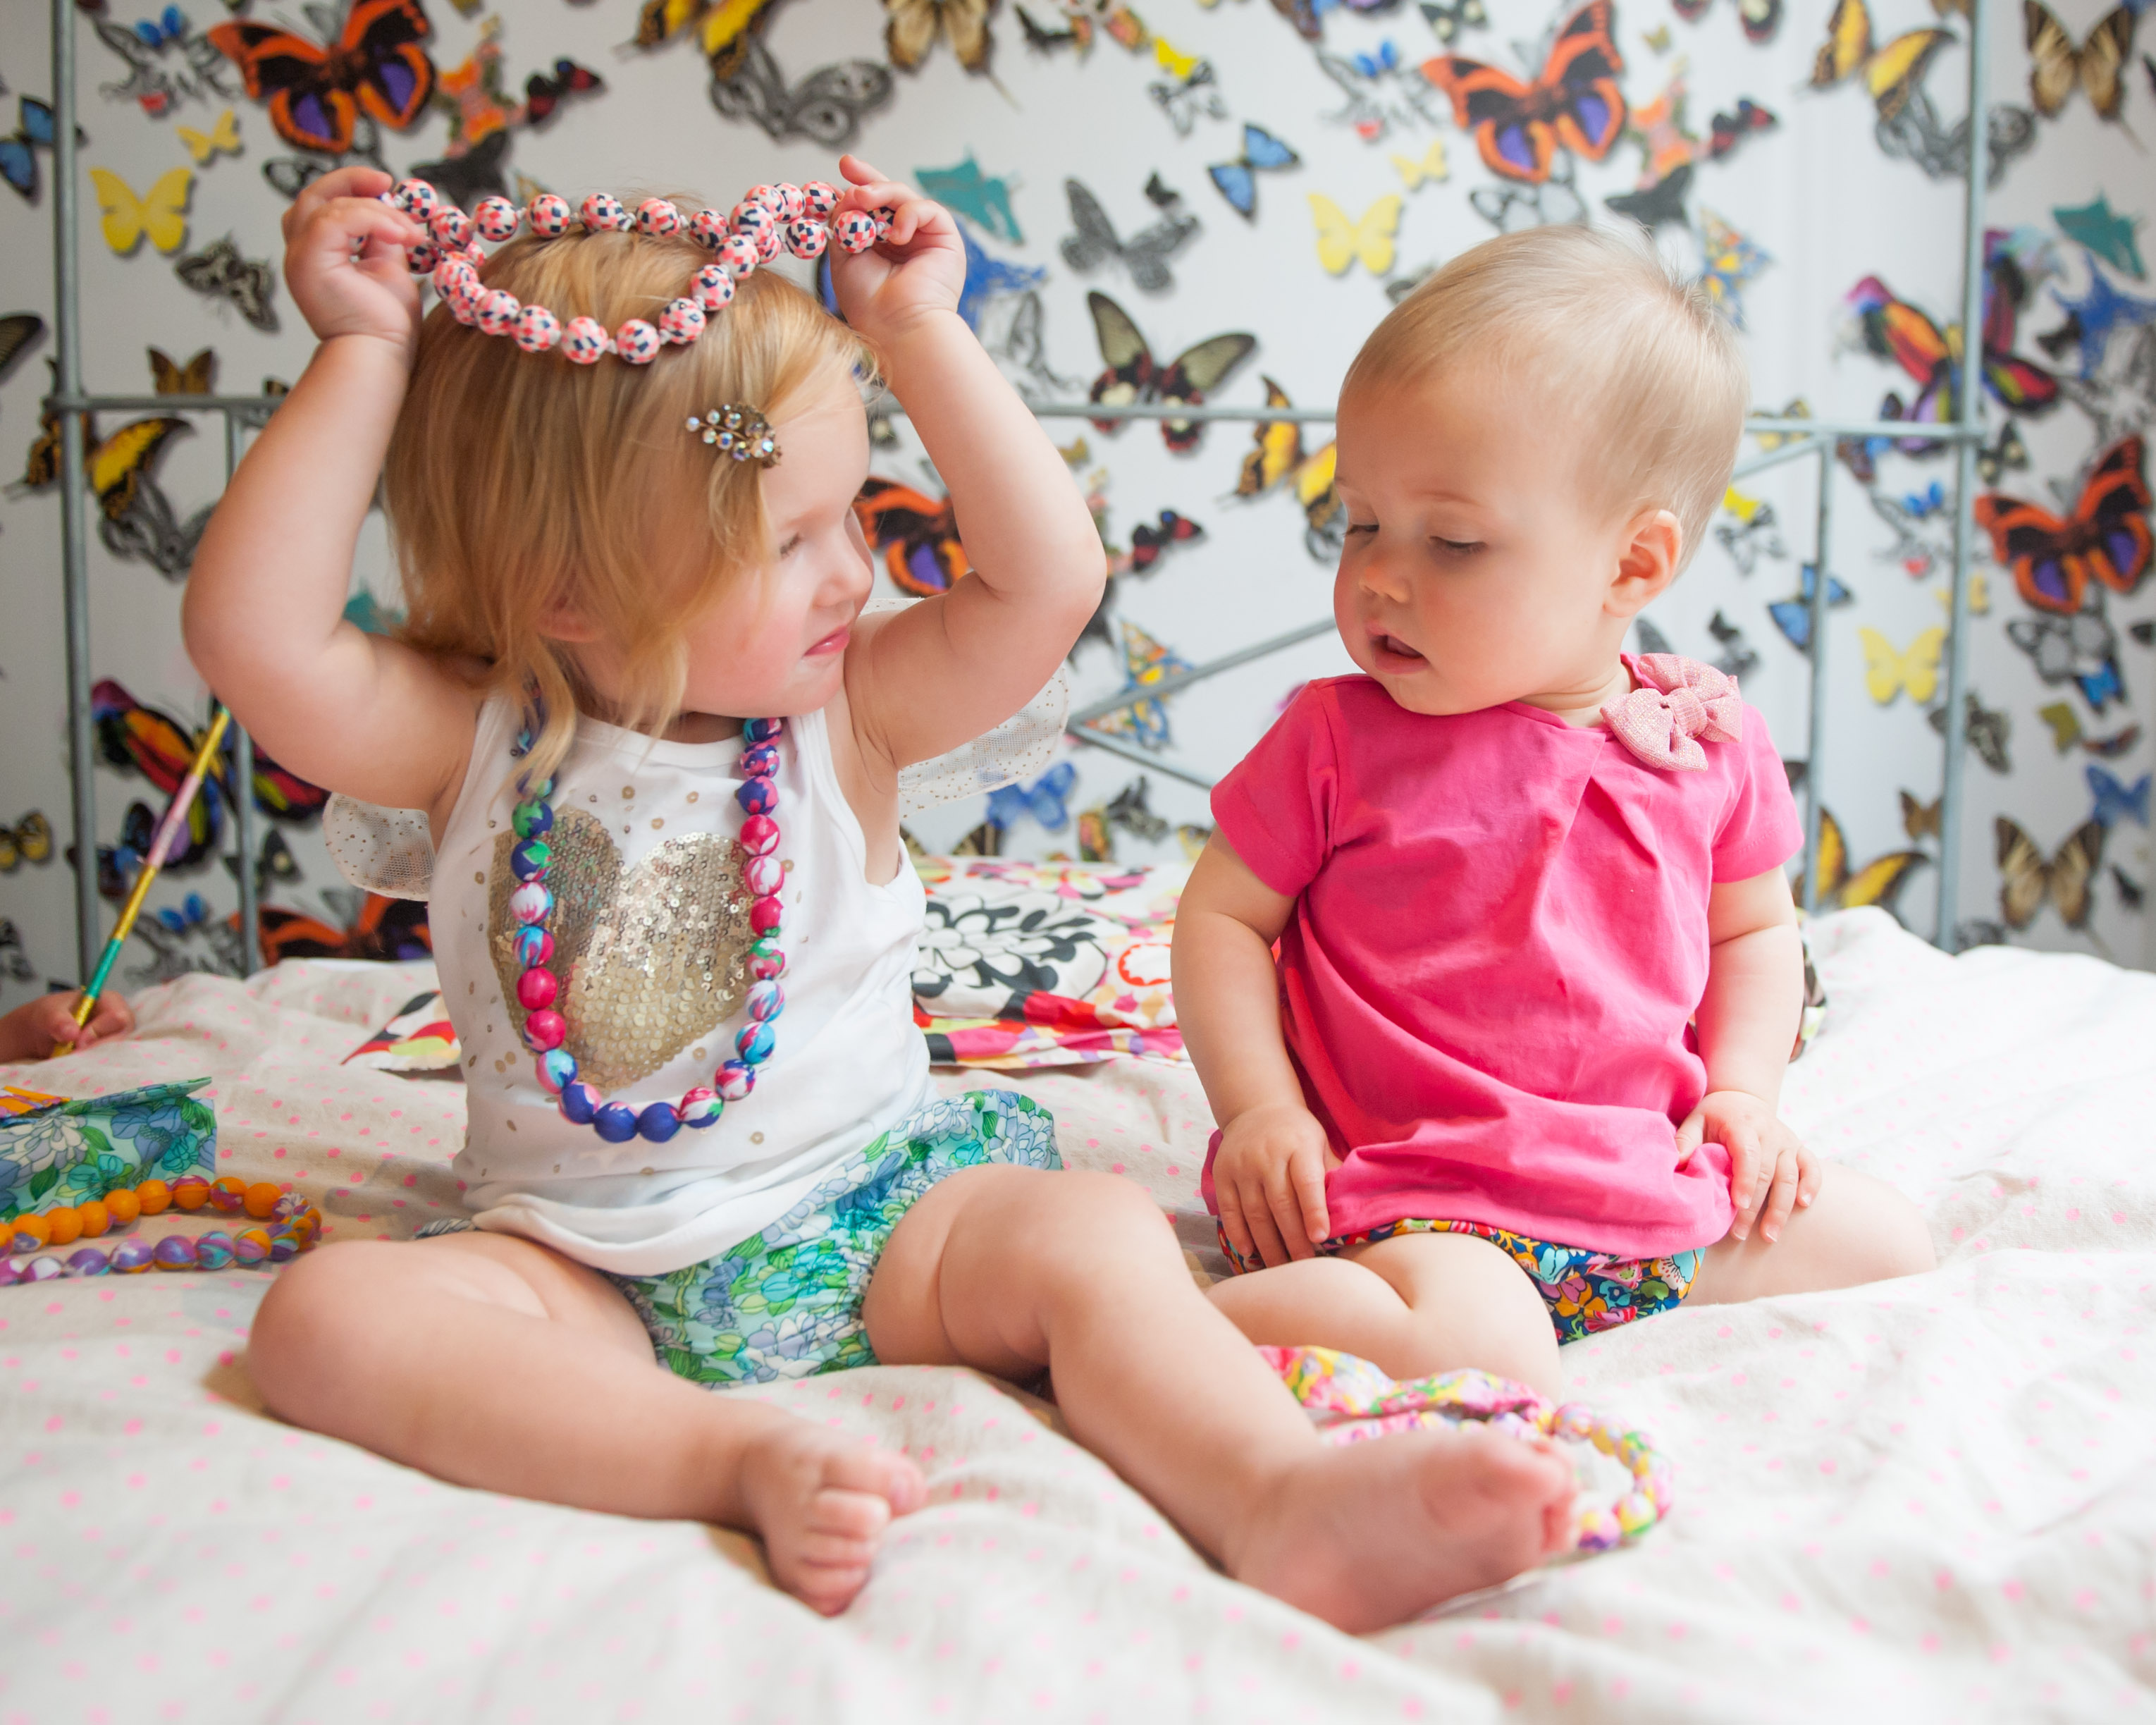 Emmy & Estelle wearing Little Maggie Moo Bloomers, Coco and Ginger Beads. Emmy wearing Cotton On Kids T-Shirt and Estelle wearing Zara Kids T-Shirt